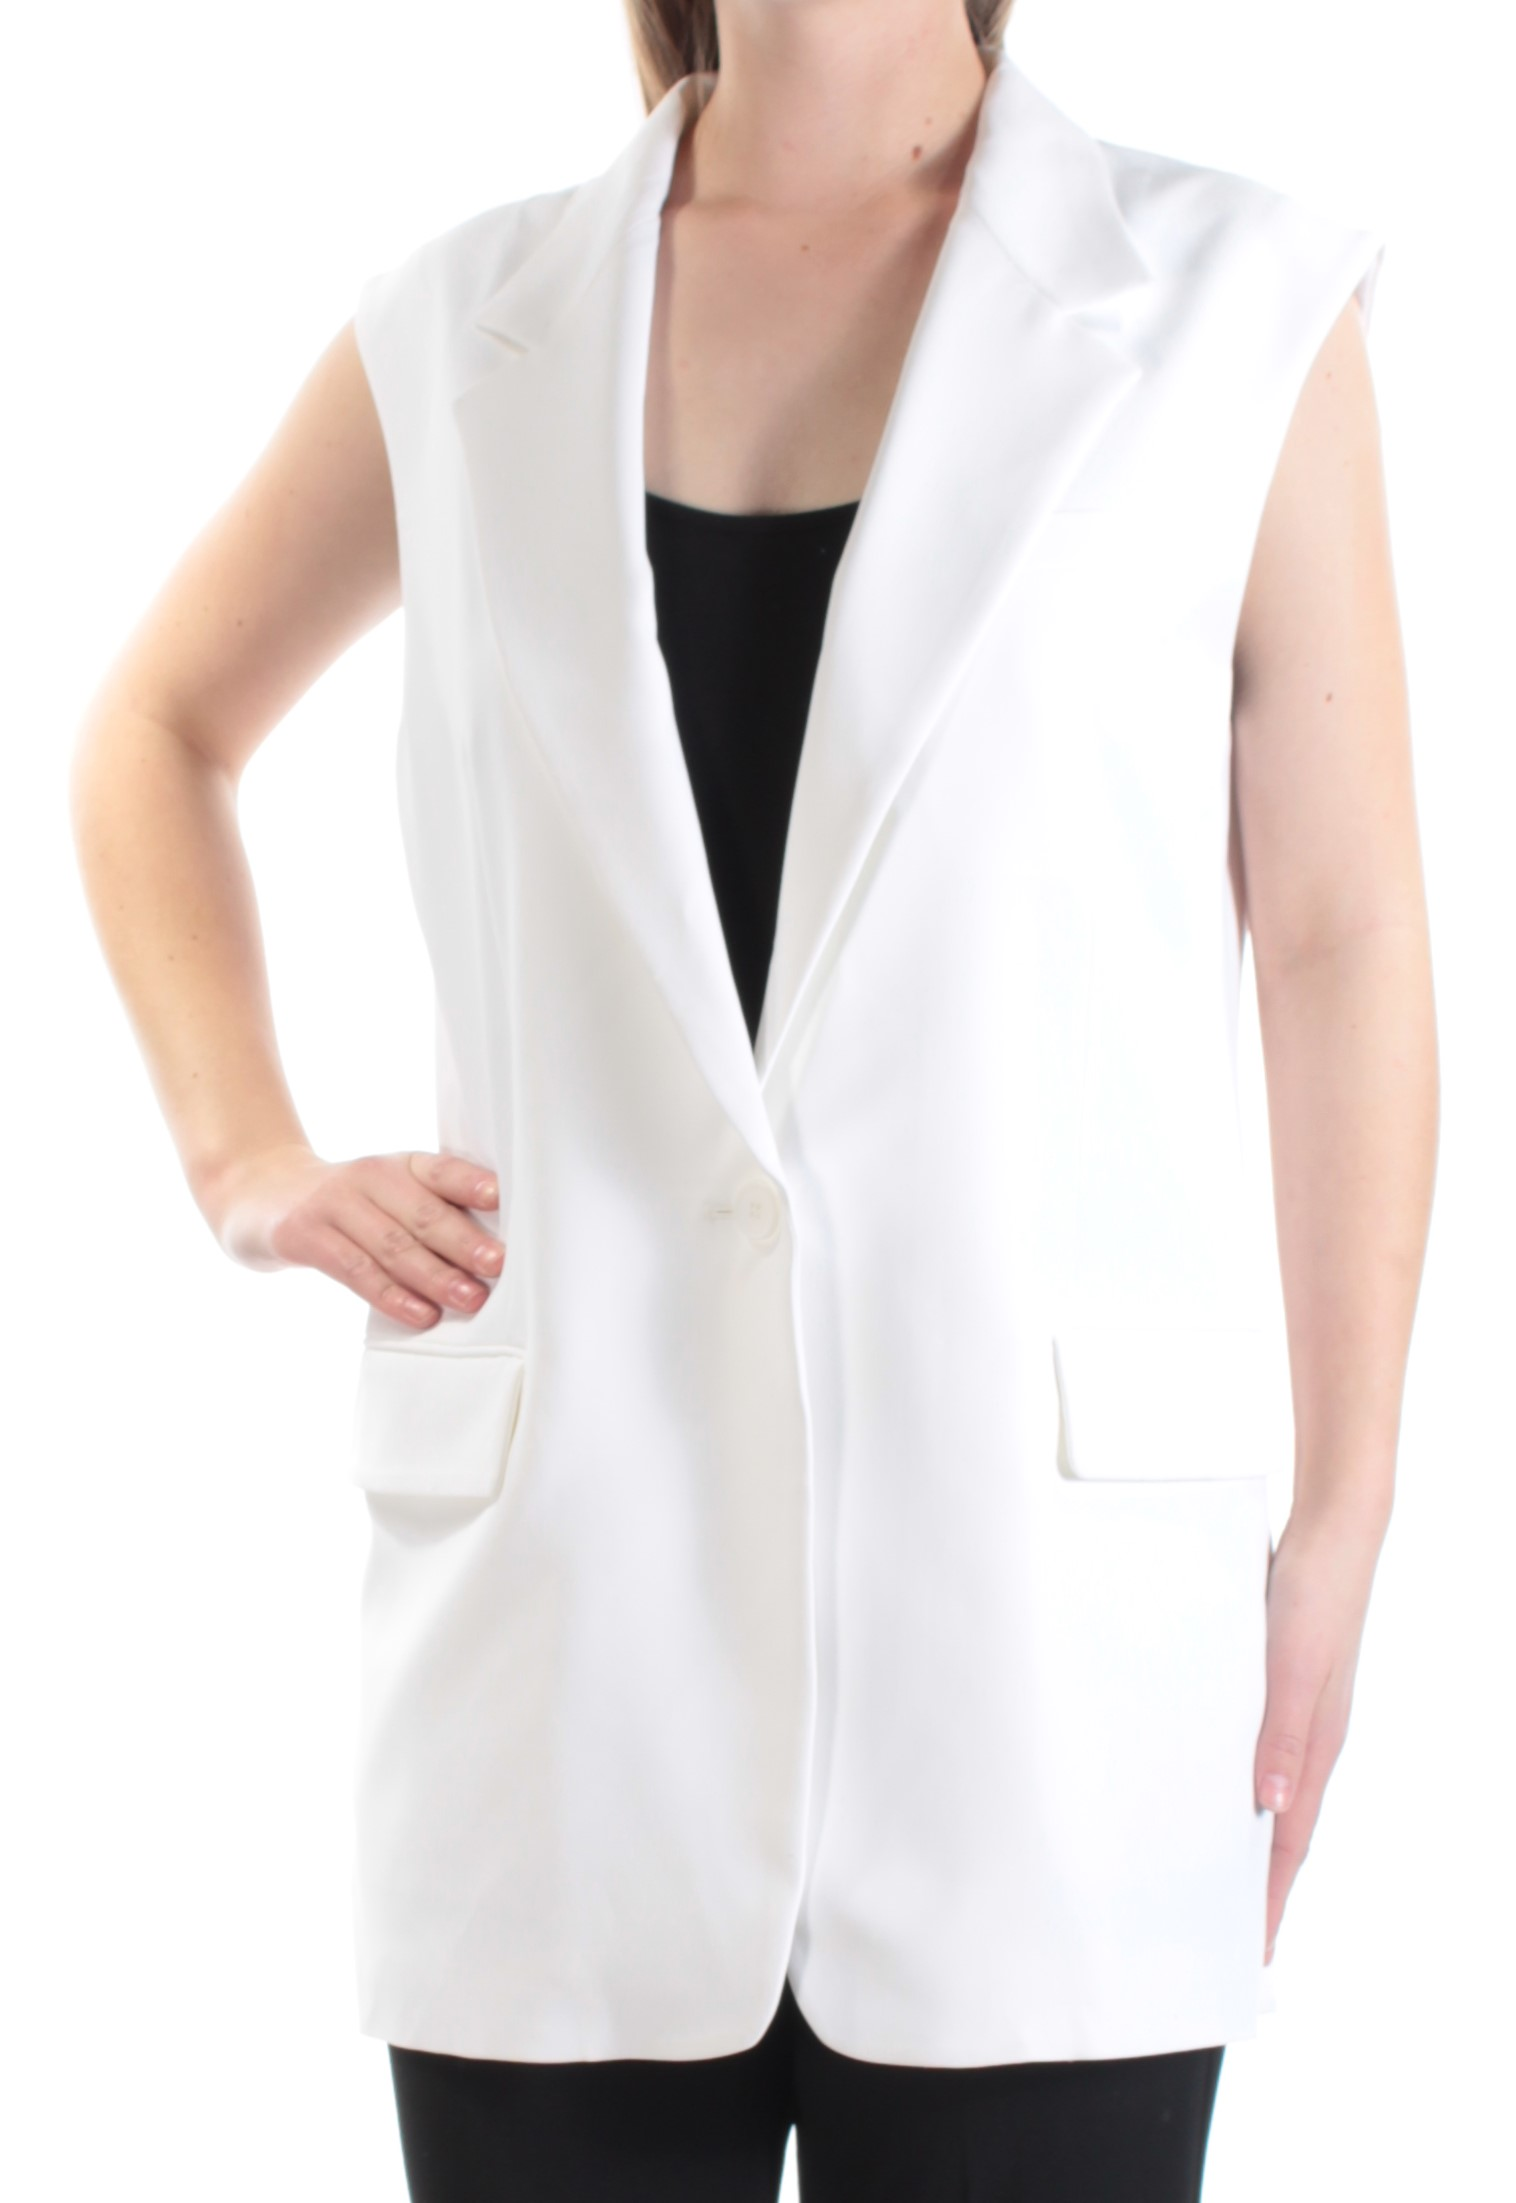 56a8368b DKNY $495 Womens New 1310 White Slitted Back Collared Vest Top M B+B ...